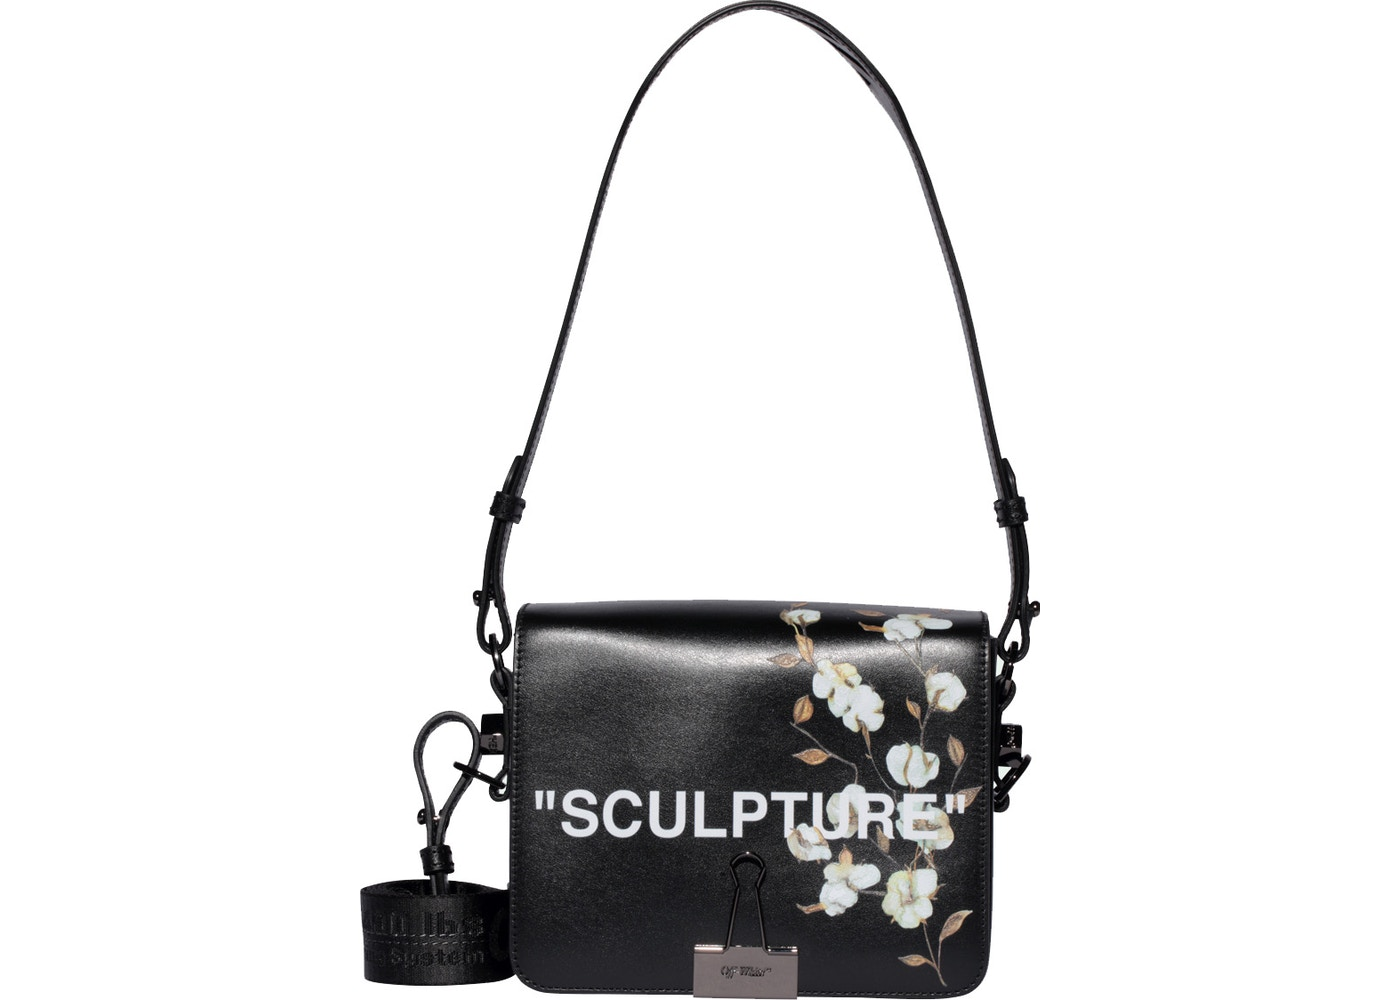 851db2427a406f OFF-WHITE Binder Clip Bag Cotton Flower Sculpture Black. Cotton Flower  Sculpture Black